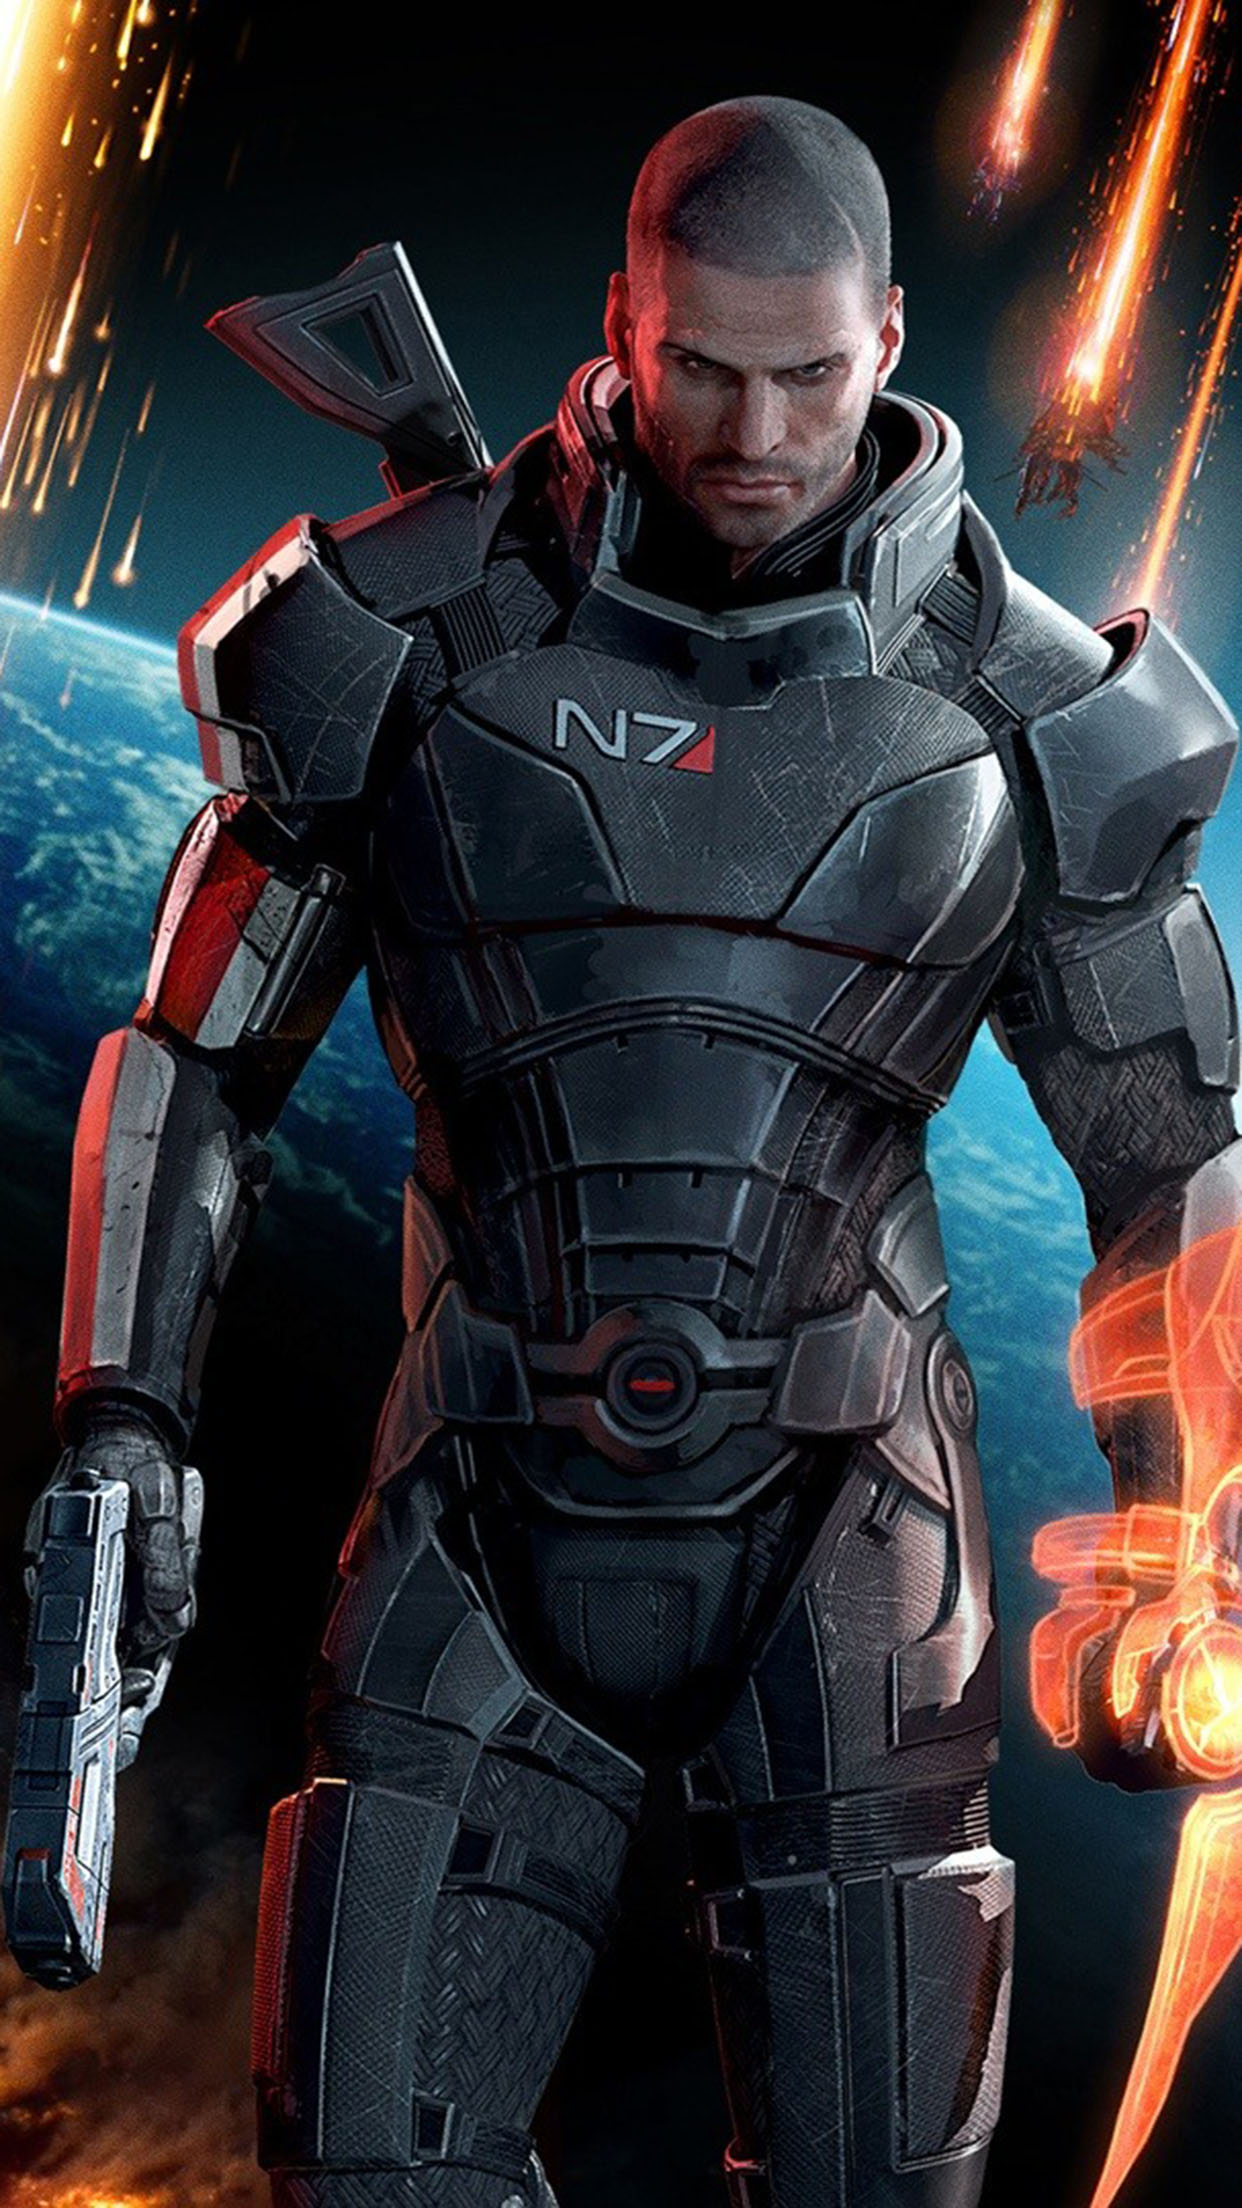 Mass Effect Mass Effect Mass Effect 1 3Wallpapers iPhone Parallax 3Wallpapers : notre sélection de fonds d'écran du 30/11/2016